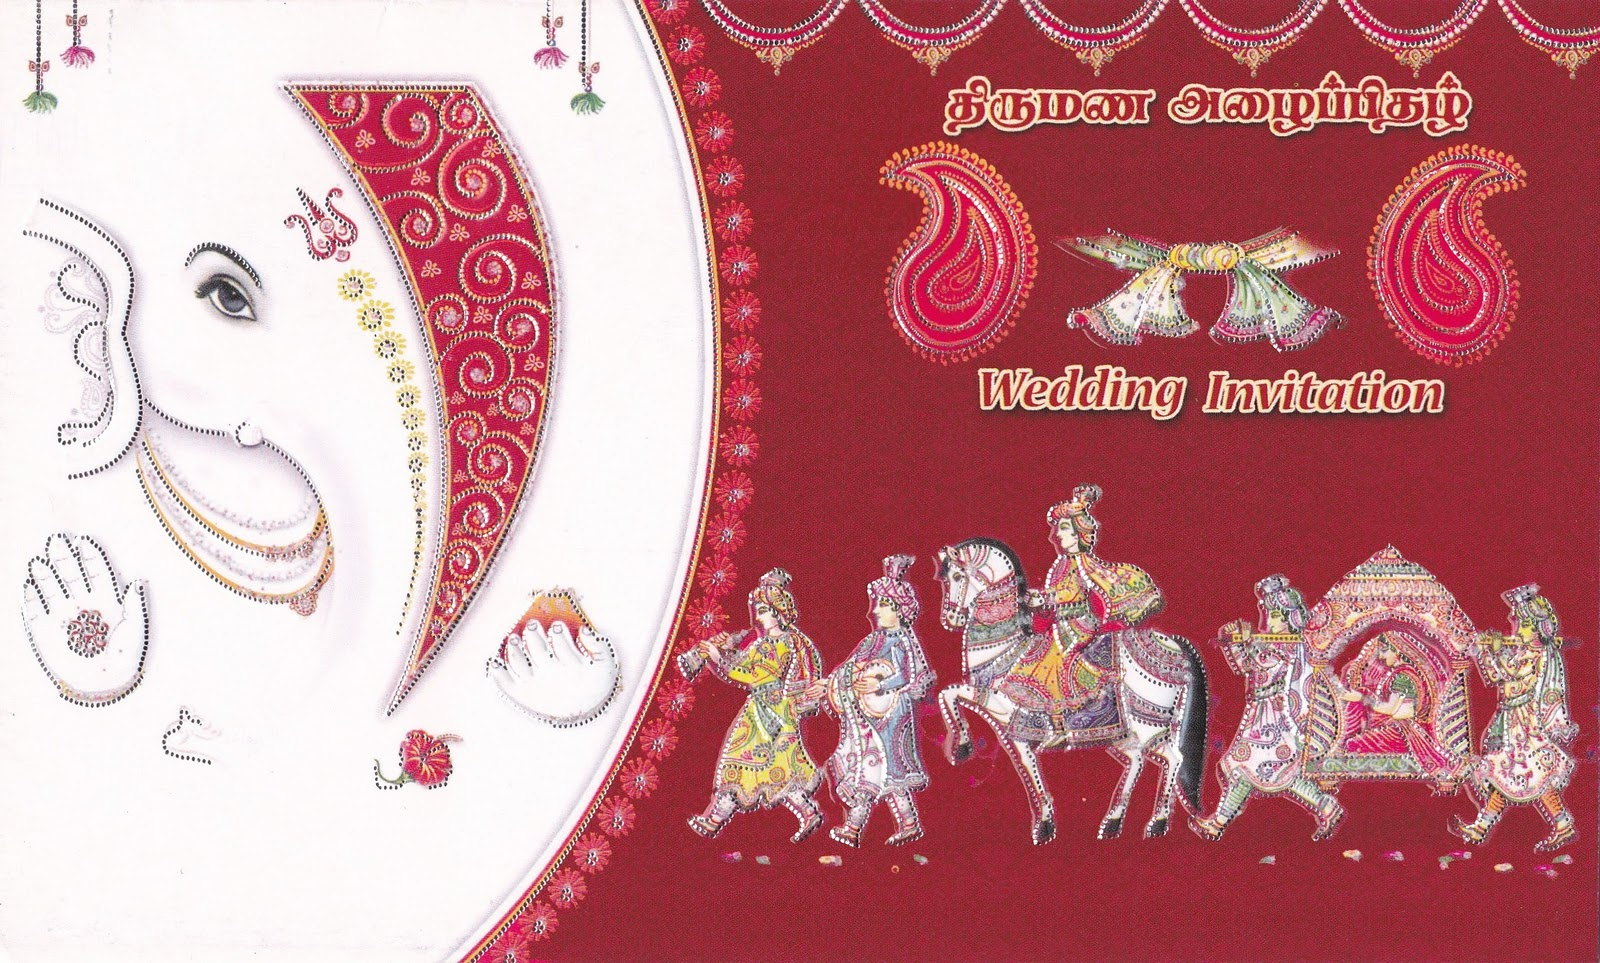 Shields S Blog Indian Wedding Card Designs